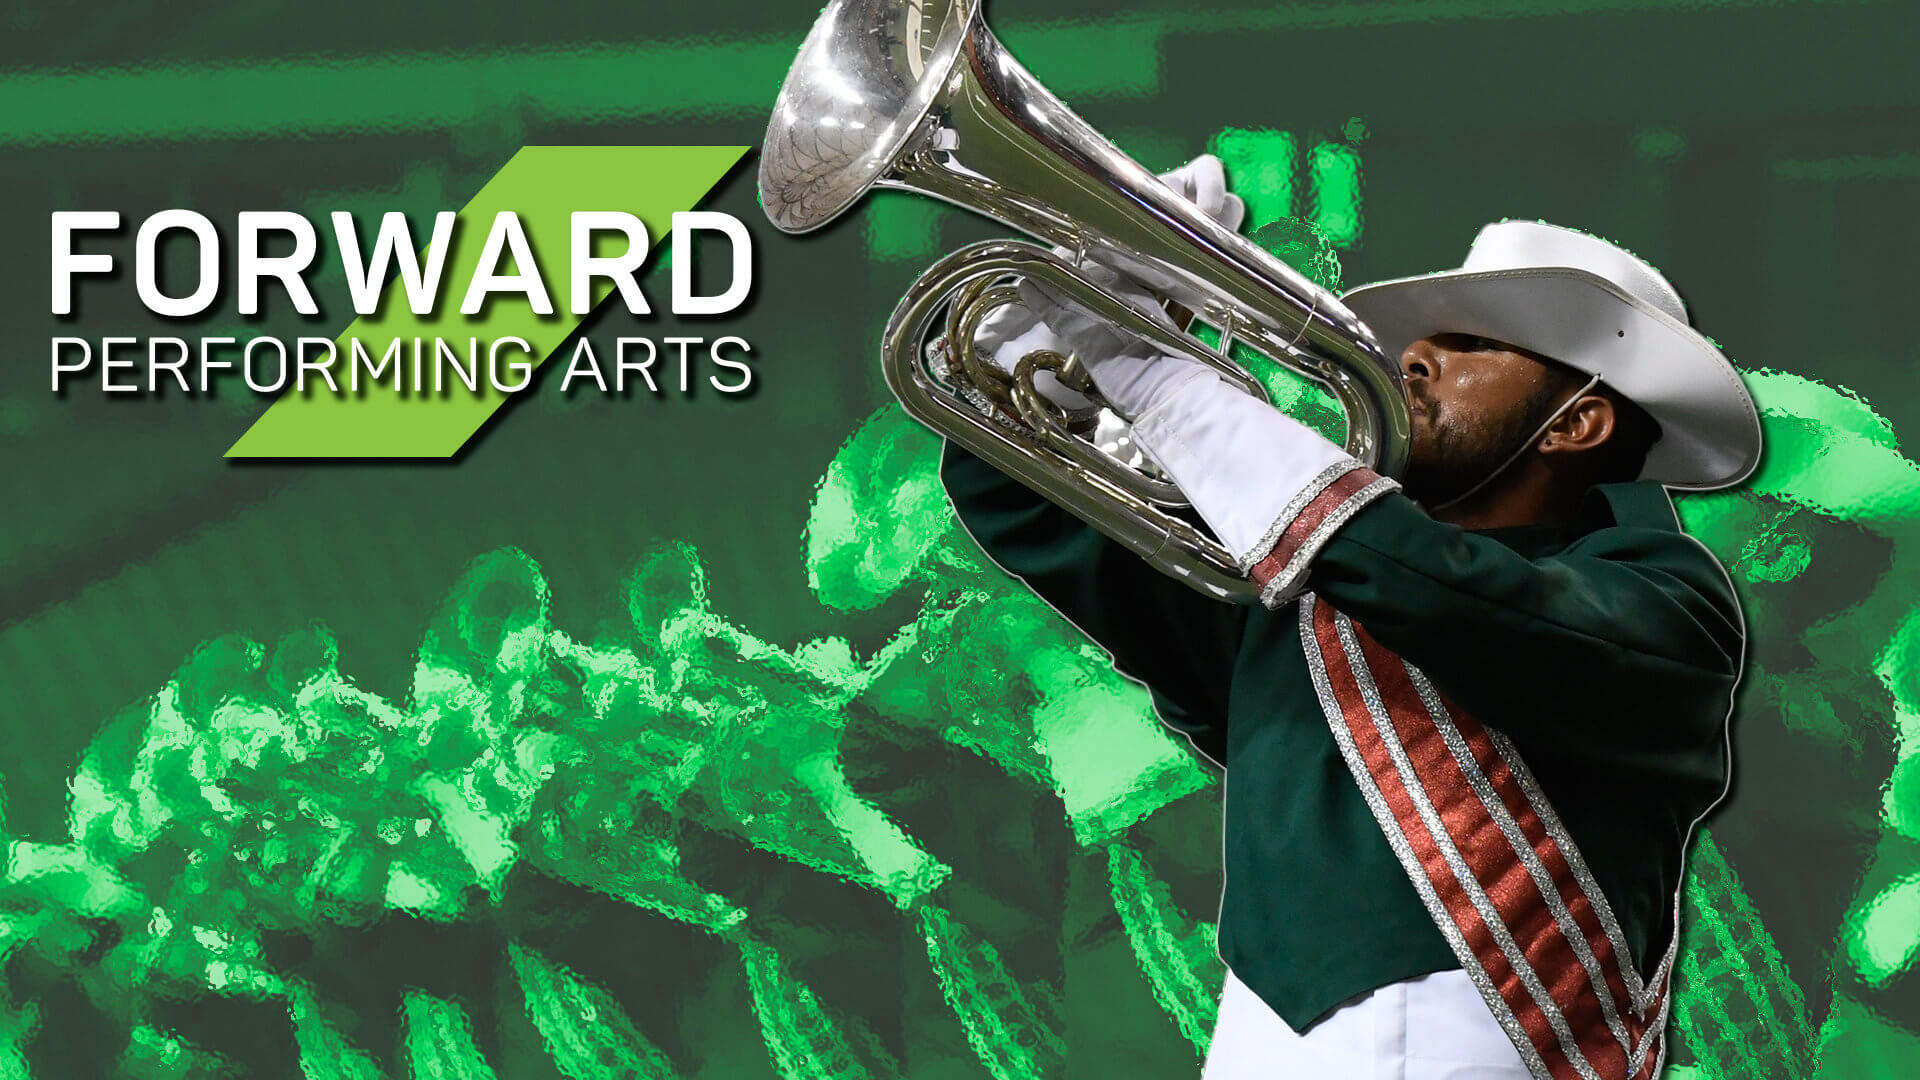 Madison Scouts looking 'Forward' to refocusing, renewing Wisconsin ties